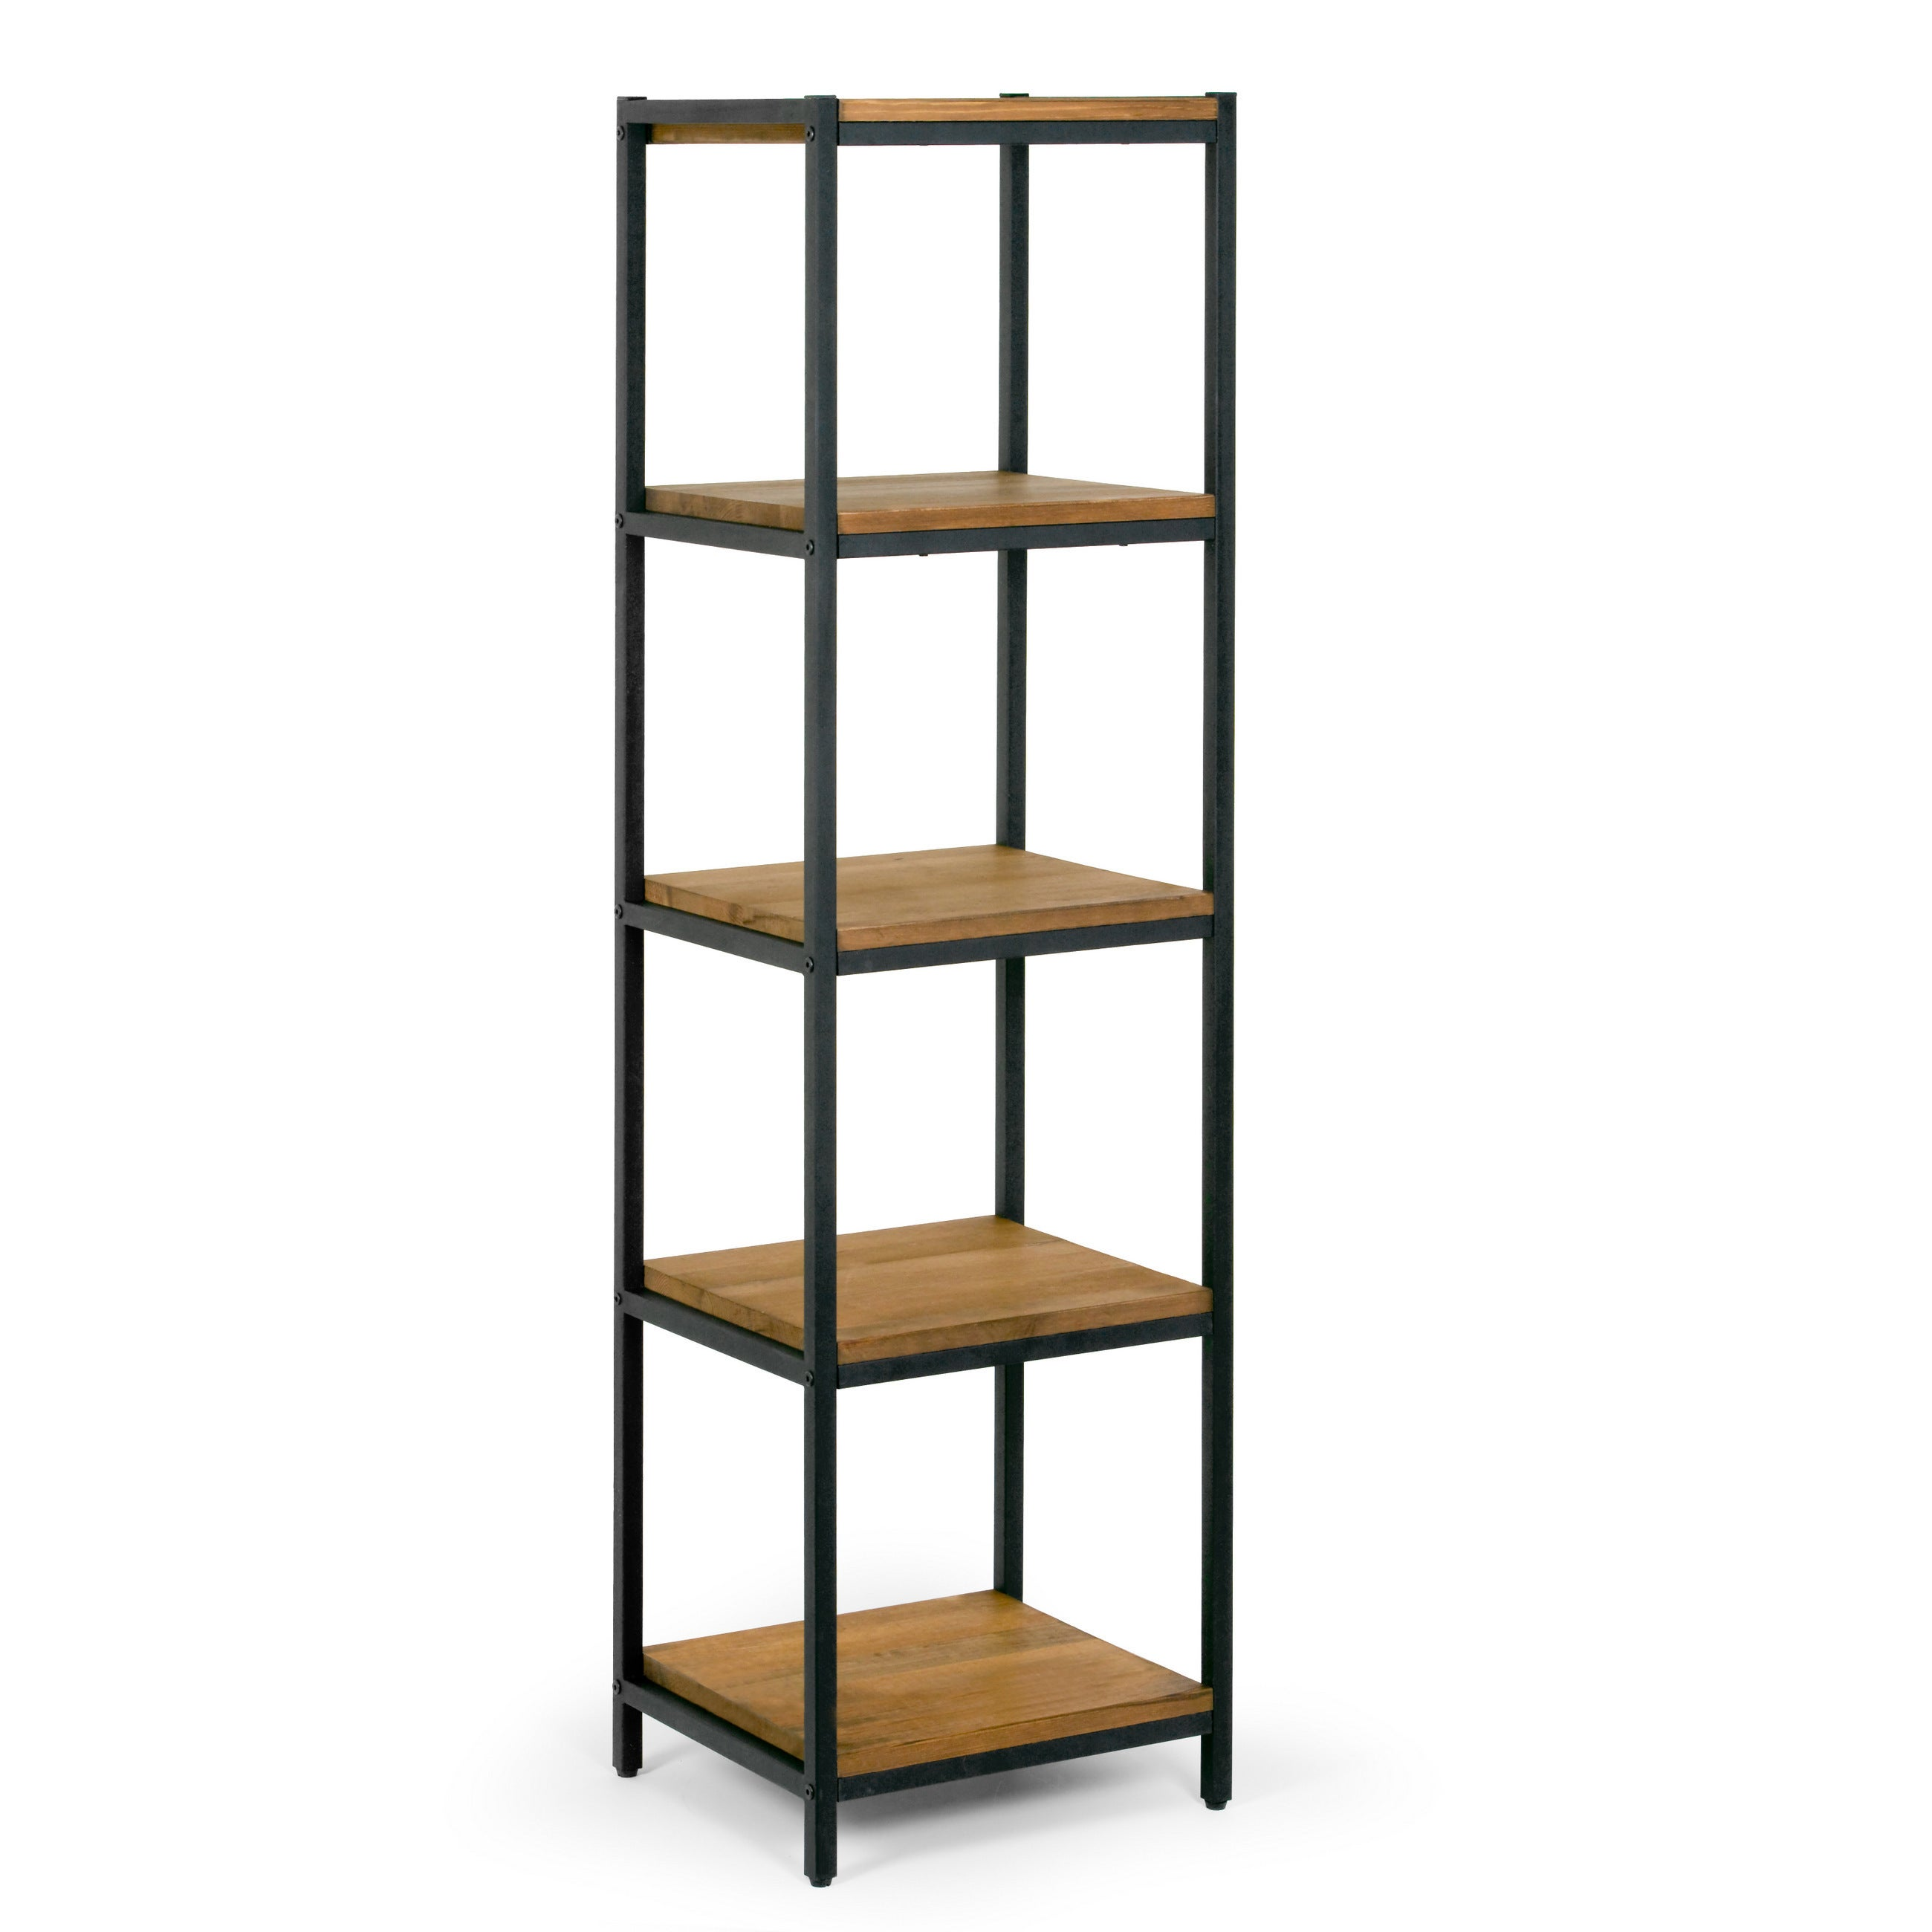 Ailis 57 Brown Pine Wood Shelf Etagere Bookcase Media Center With Metal Frame